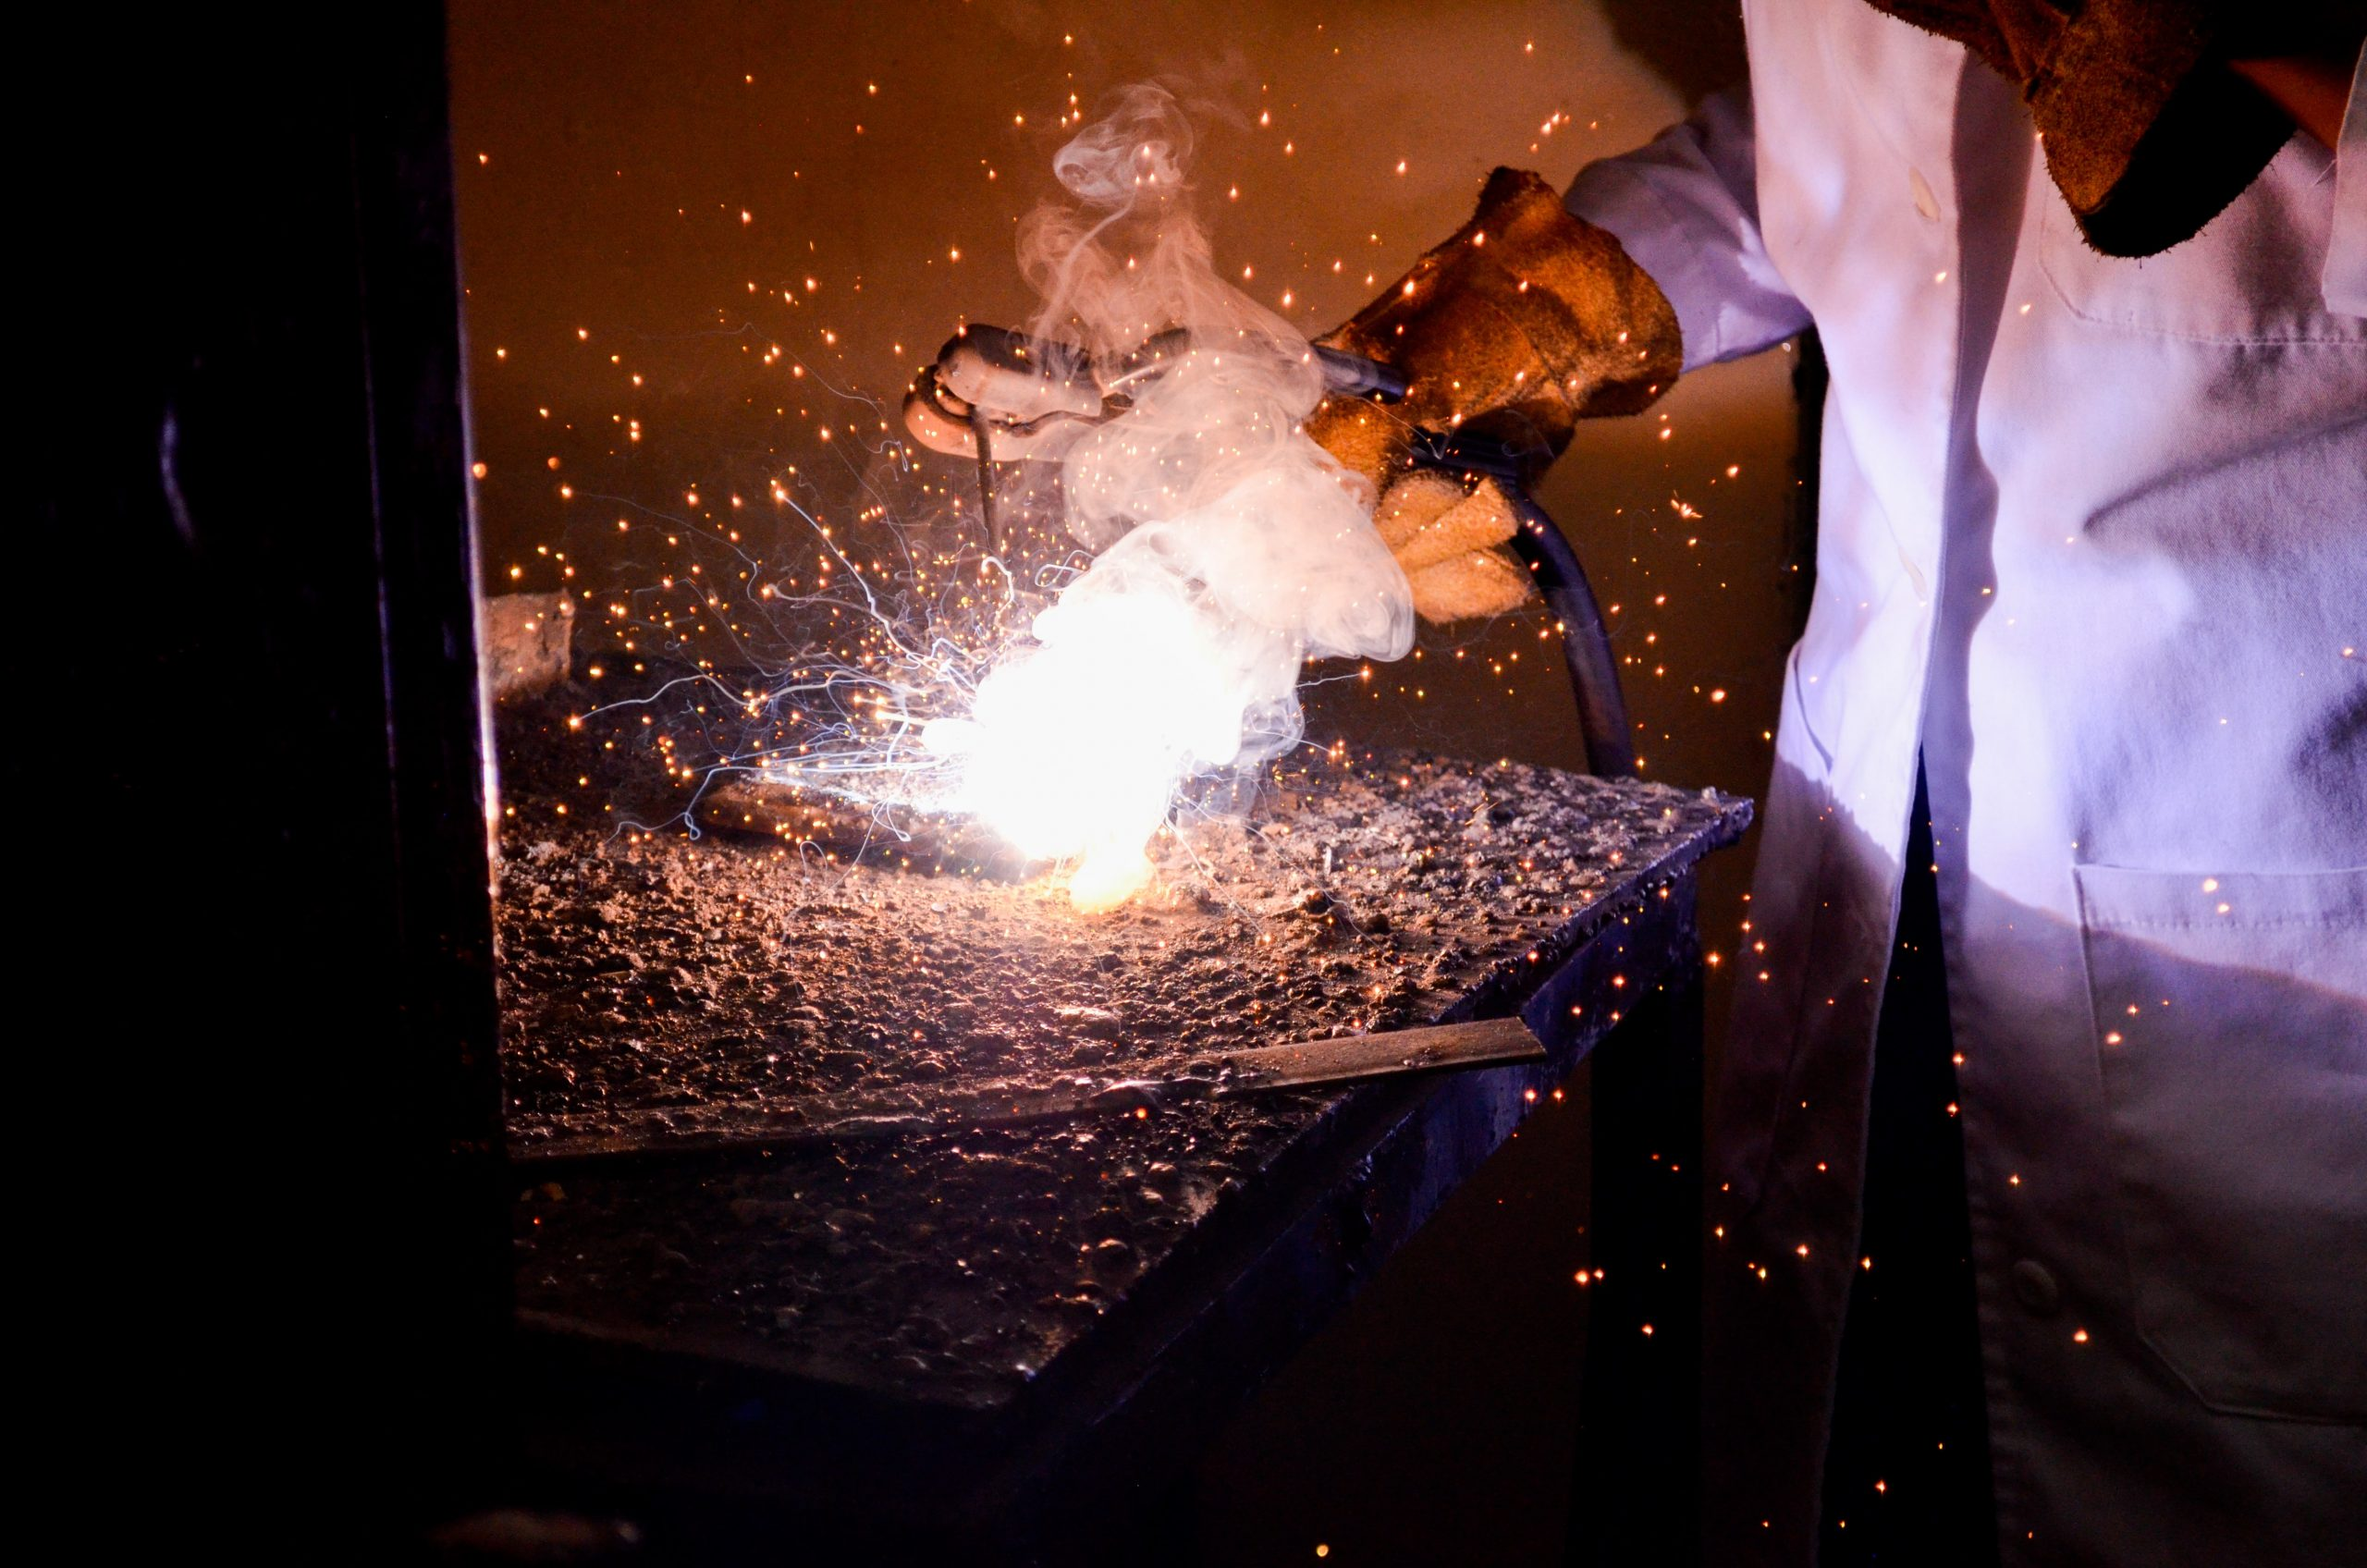 Welding services during Covid-19